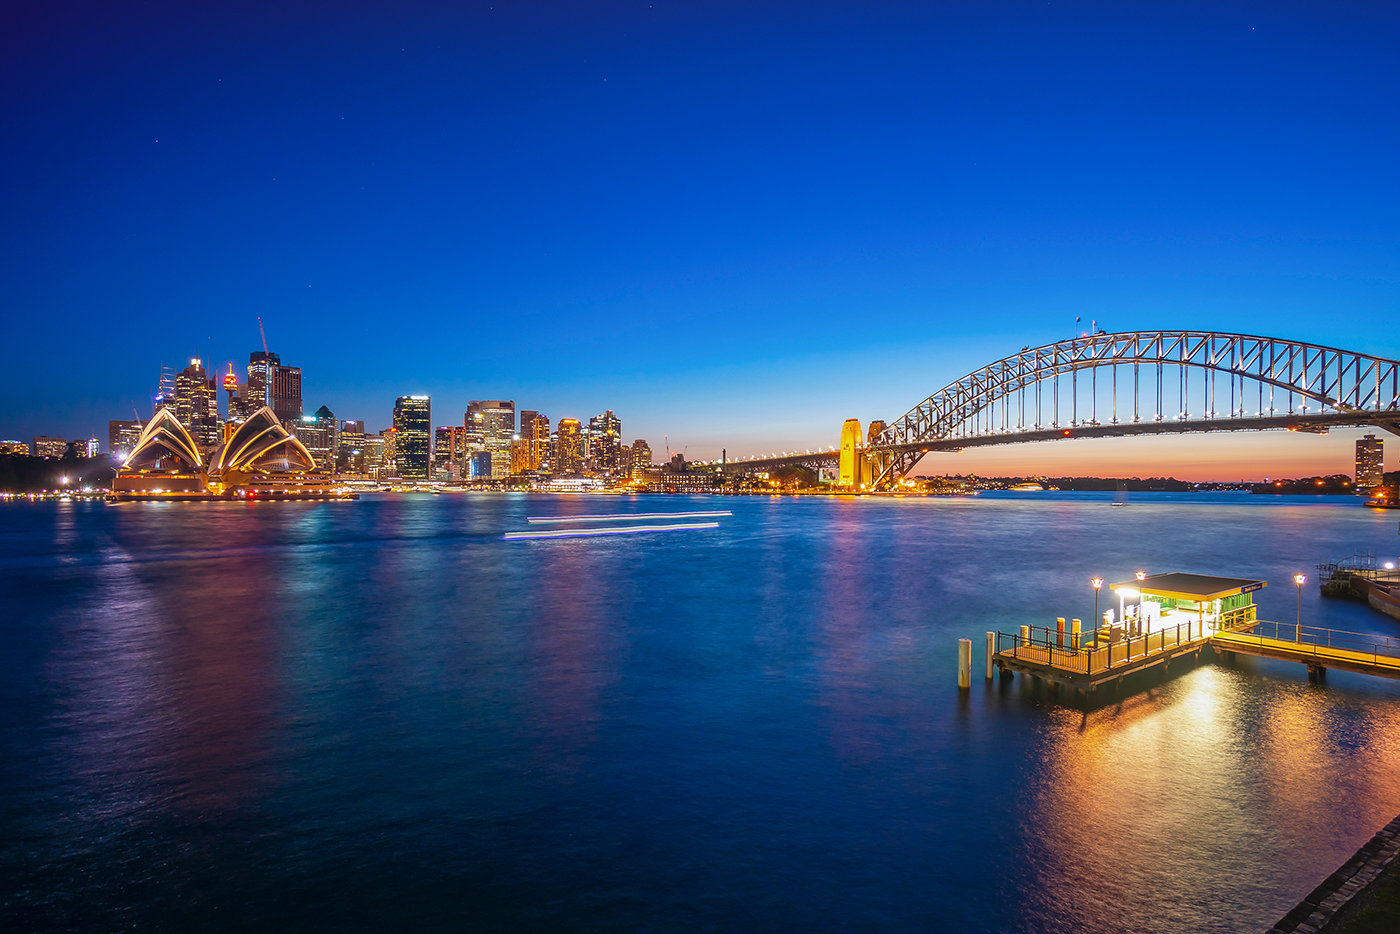 Beulah Street Wharf at night, with the Sydney Opera House and Harbour Bridge in the distance